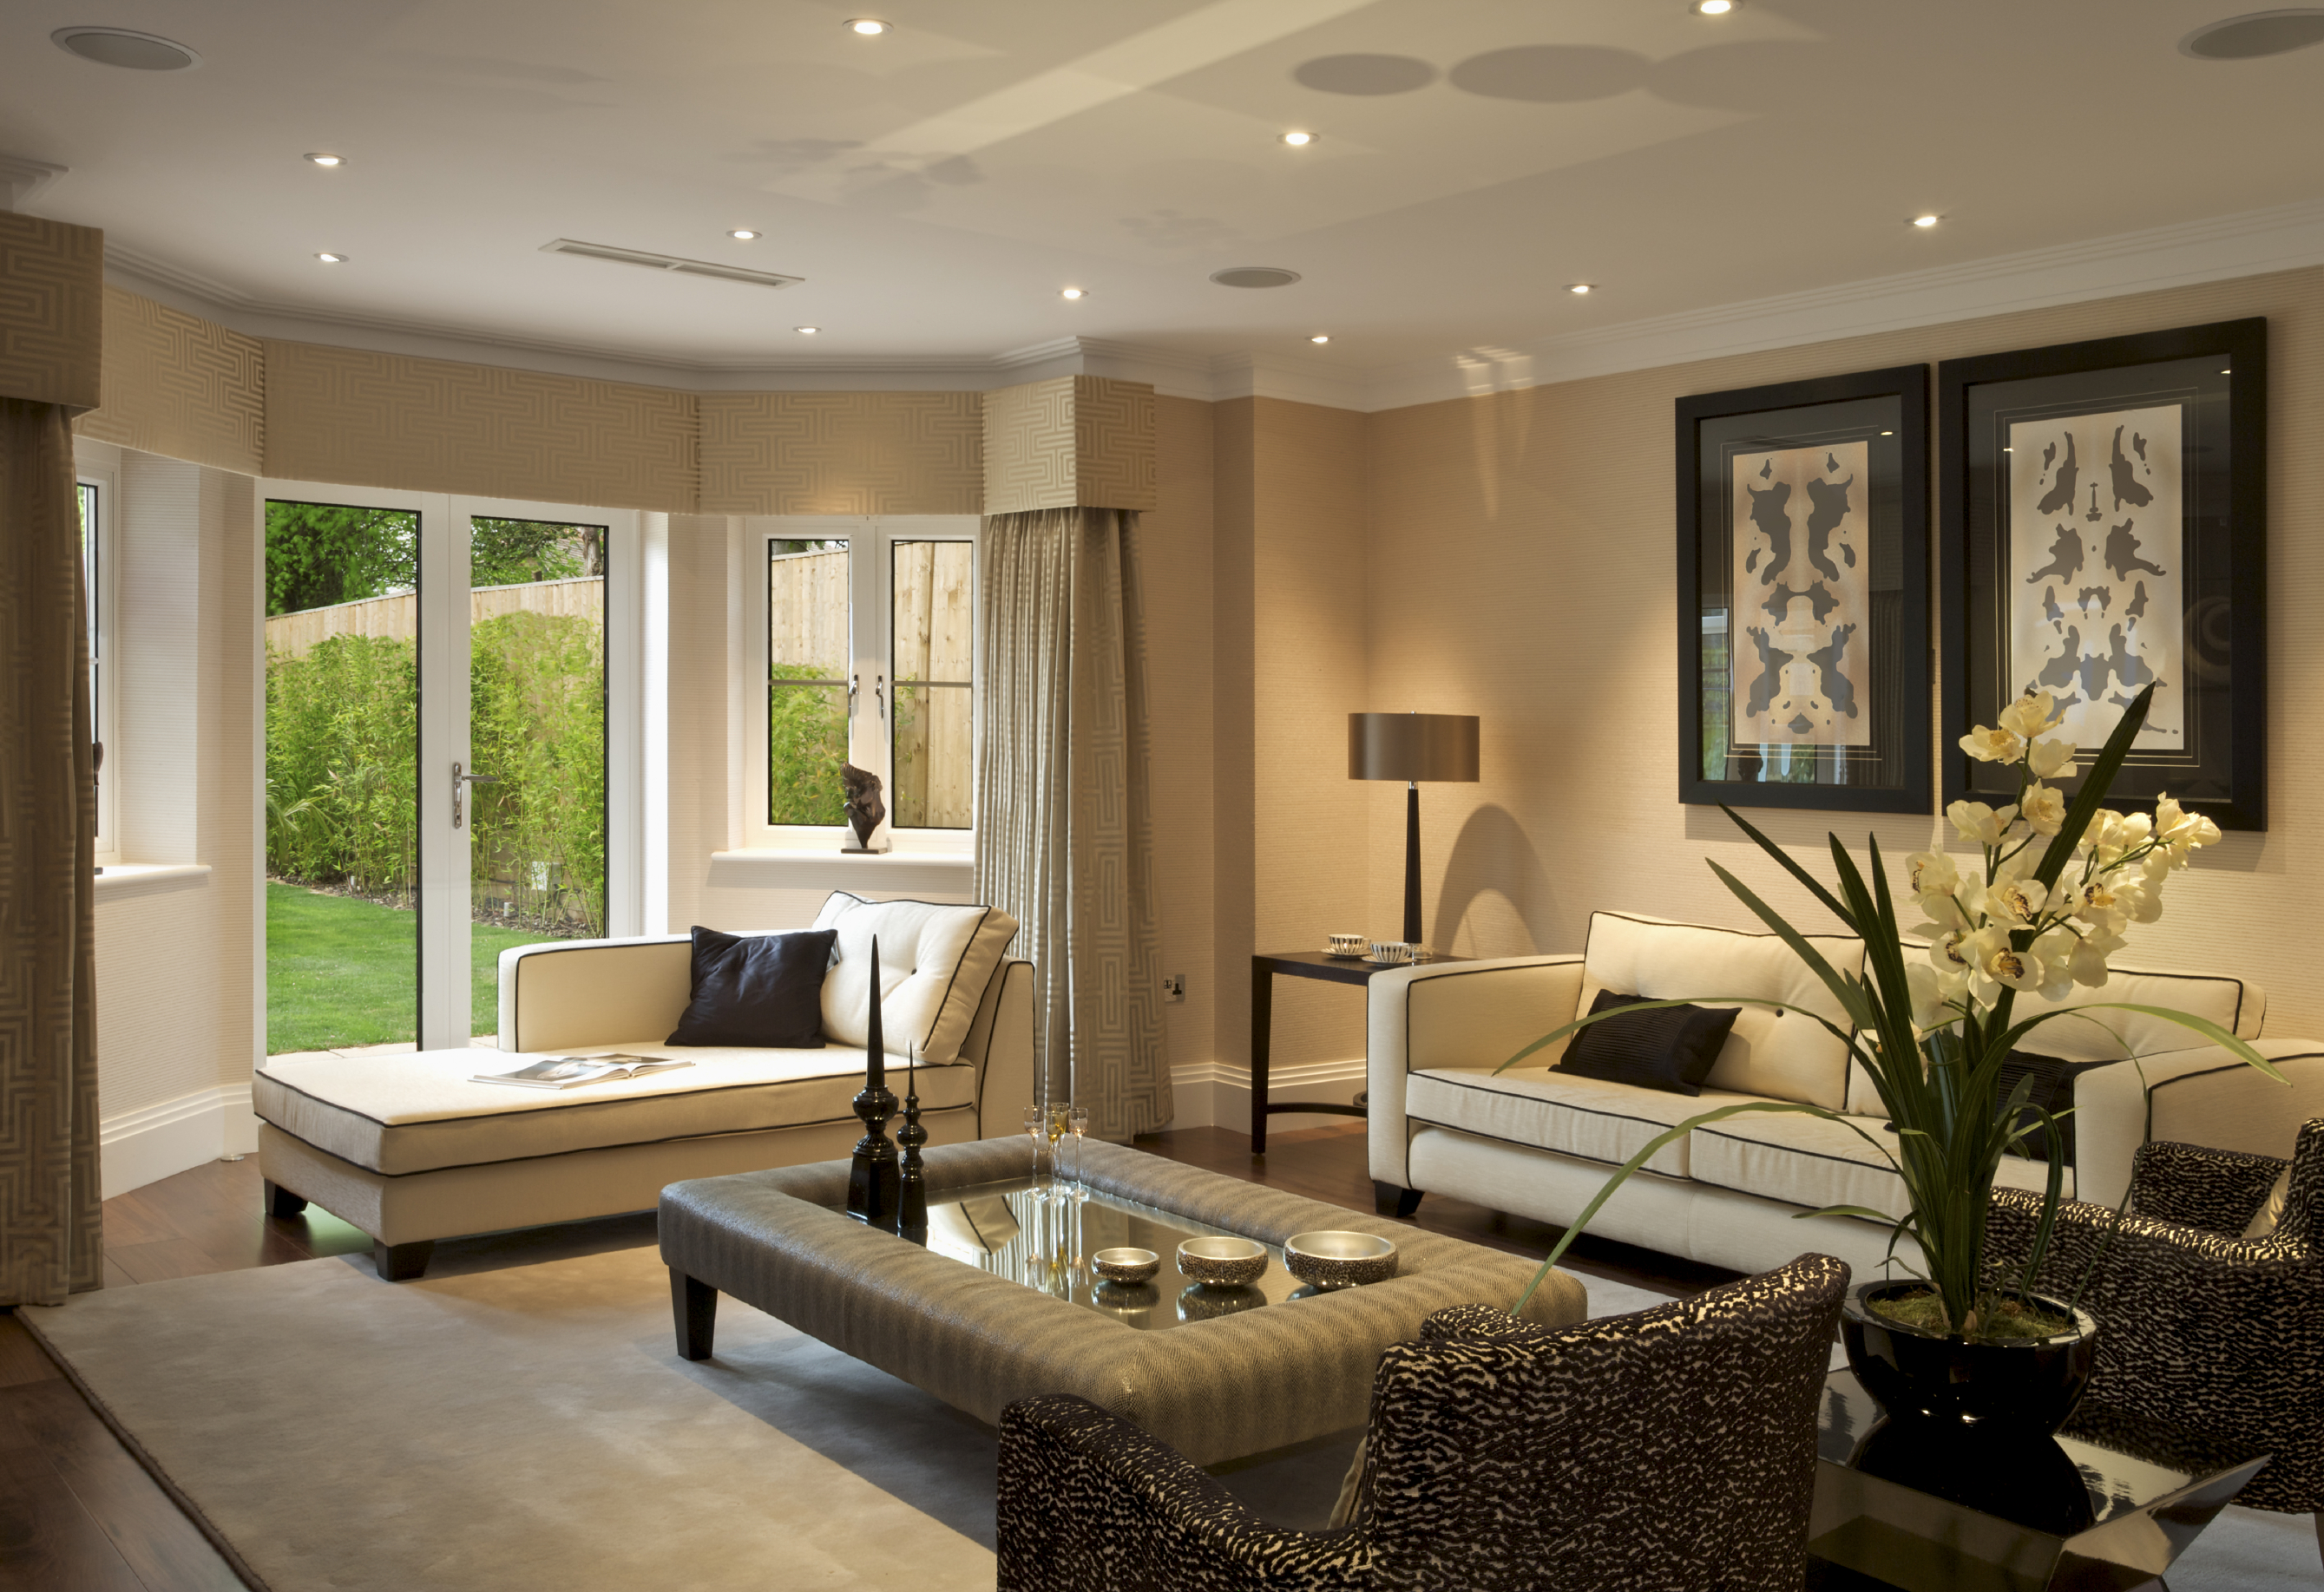 Home Sweet Home Team Blog » Blog Archive » 8 Home Staging Tips From ...